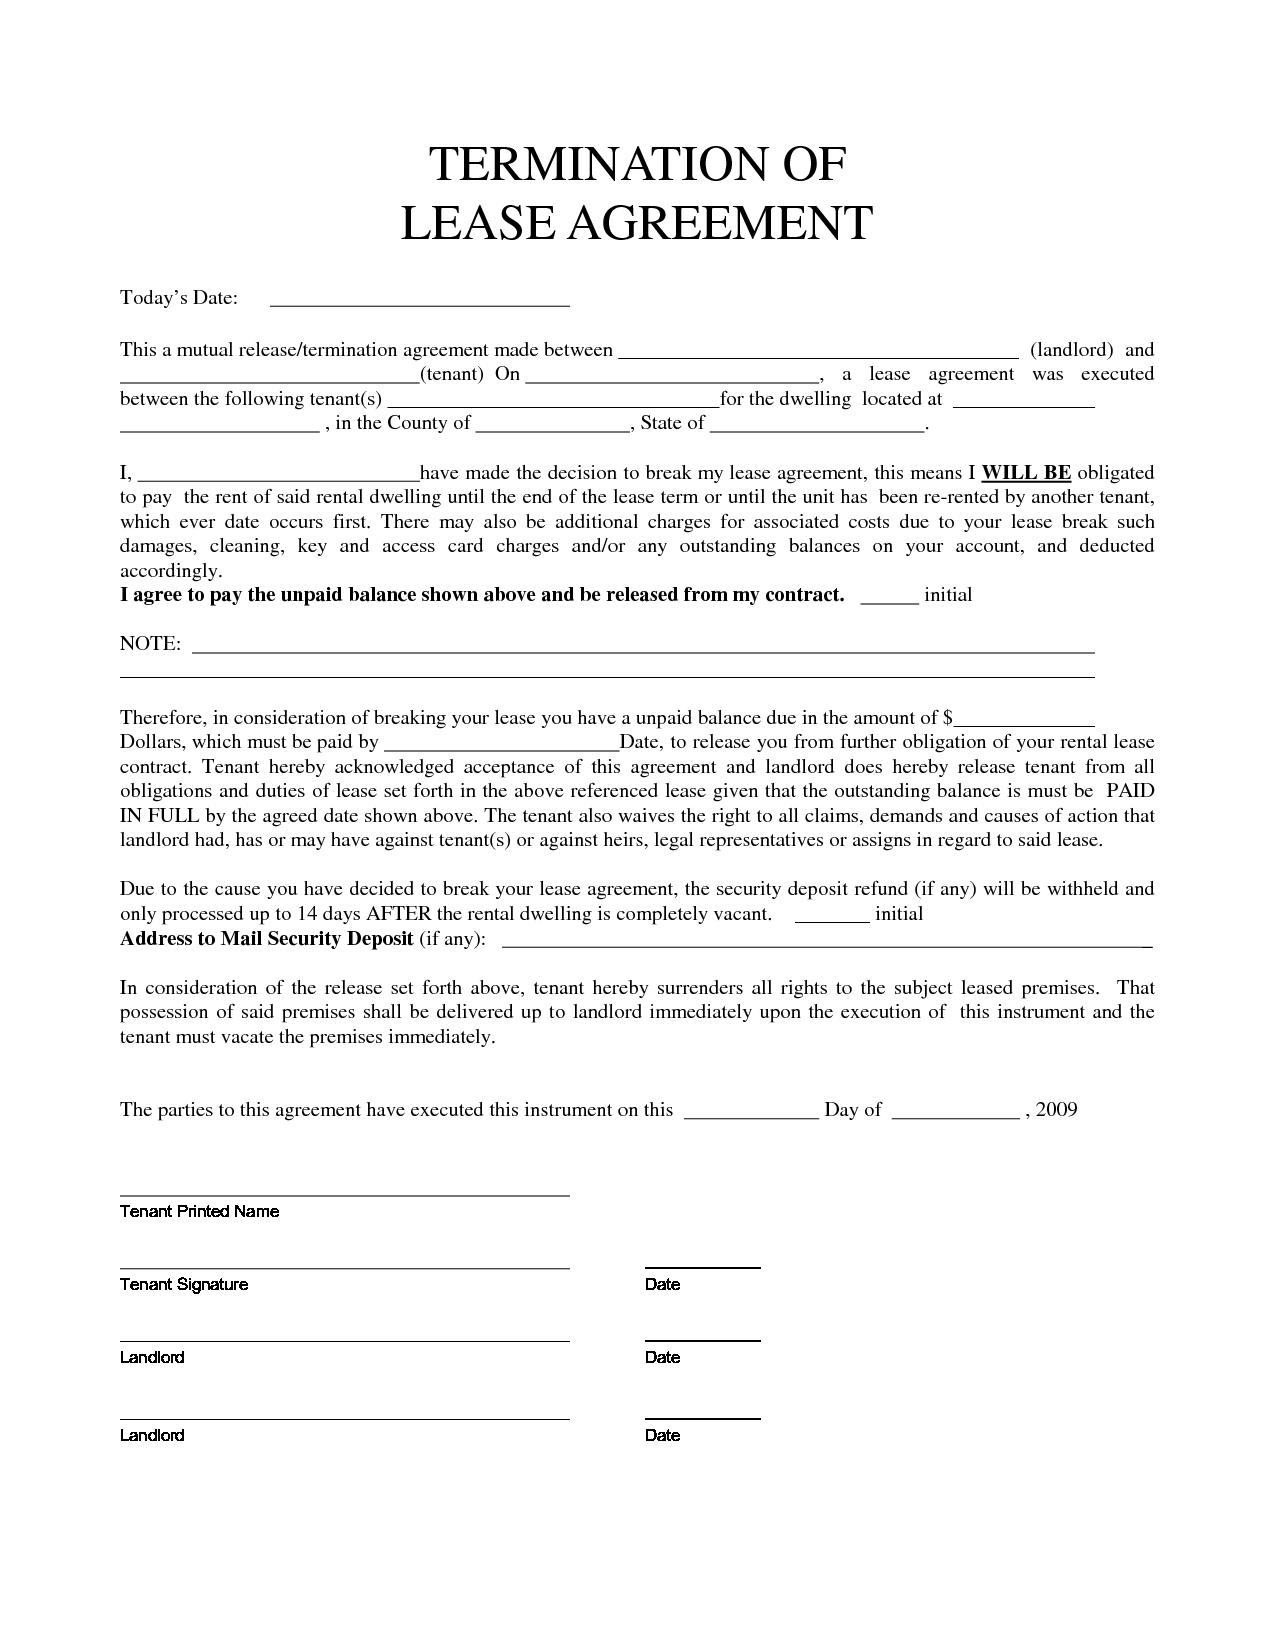 equipment lease agreement template south africa - cancellation of lease agreement gtld world congress